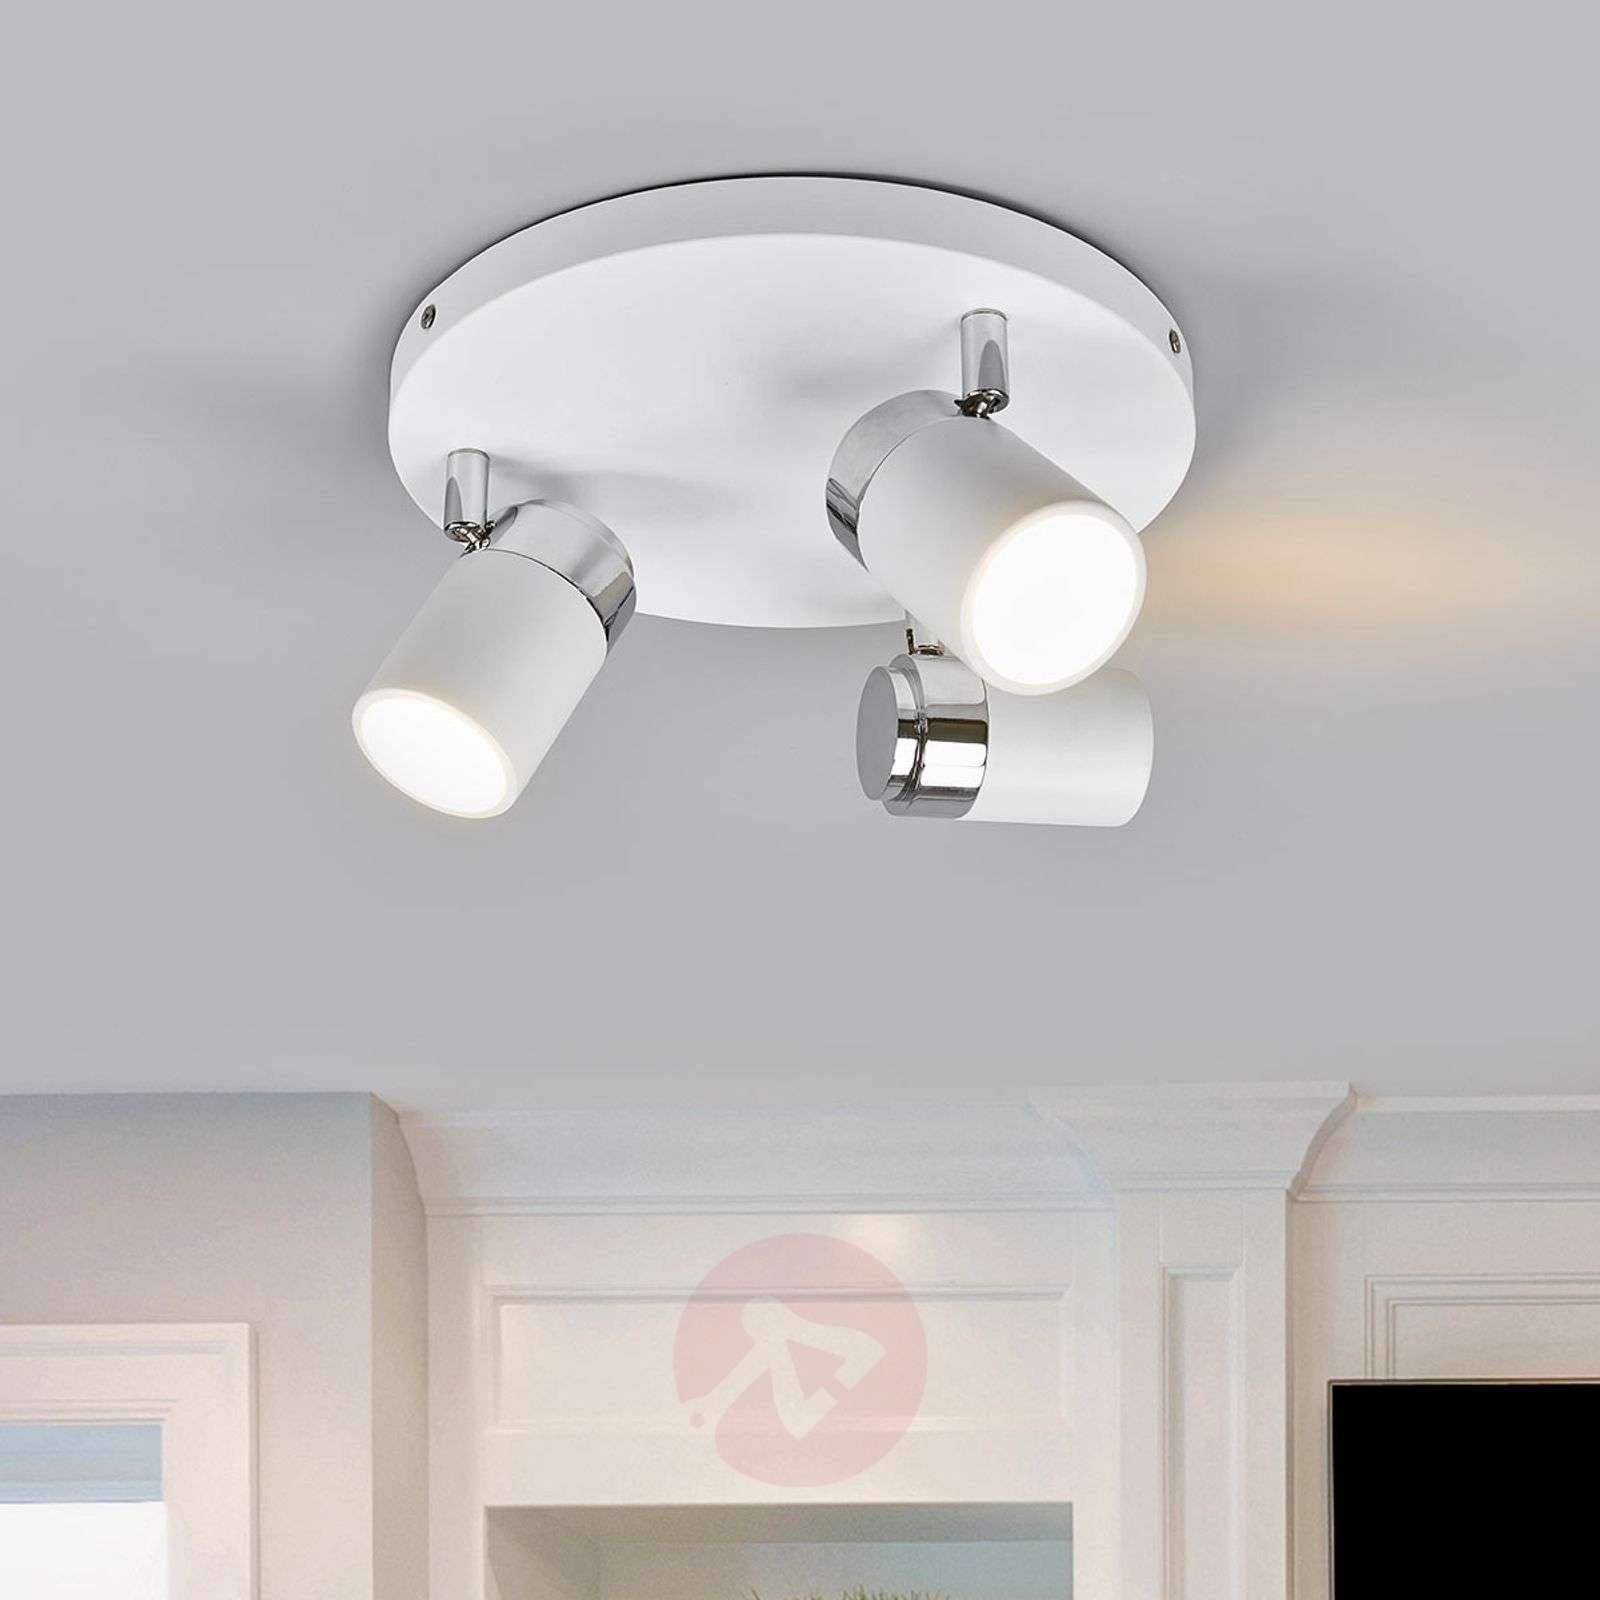 Kardo bathroom circular ceiling spot, white/chrome-9641086-010